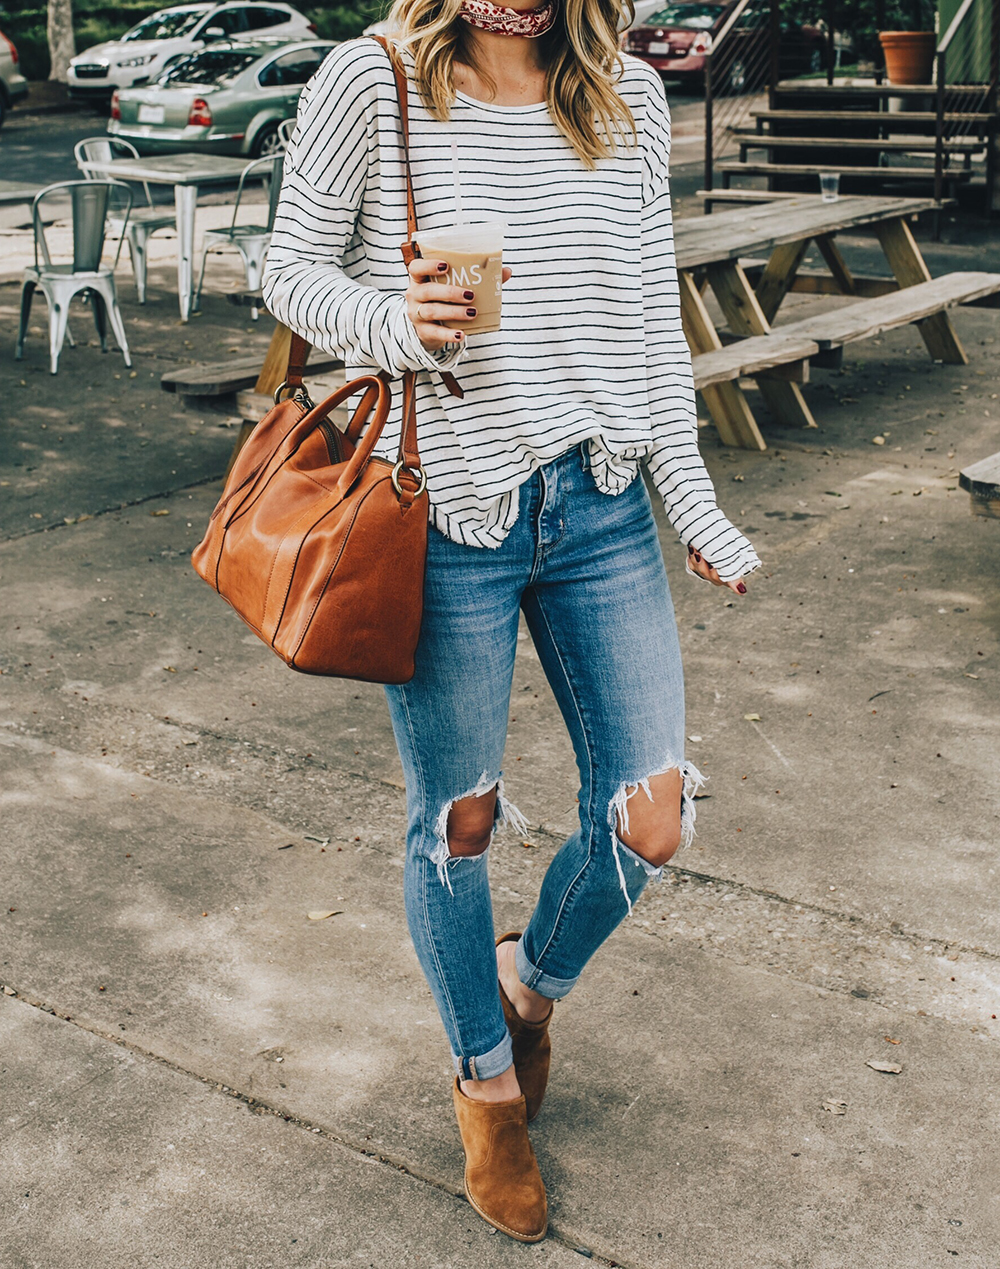 livvyland-blog-olivia-watson-levis-721-distressed-jeans-striped-tee-tan-suede-mules-austin-texas-fashion-blogger